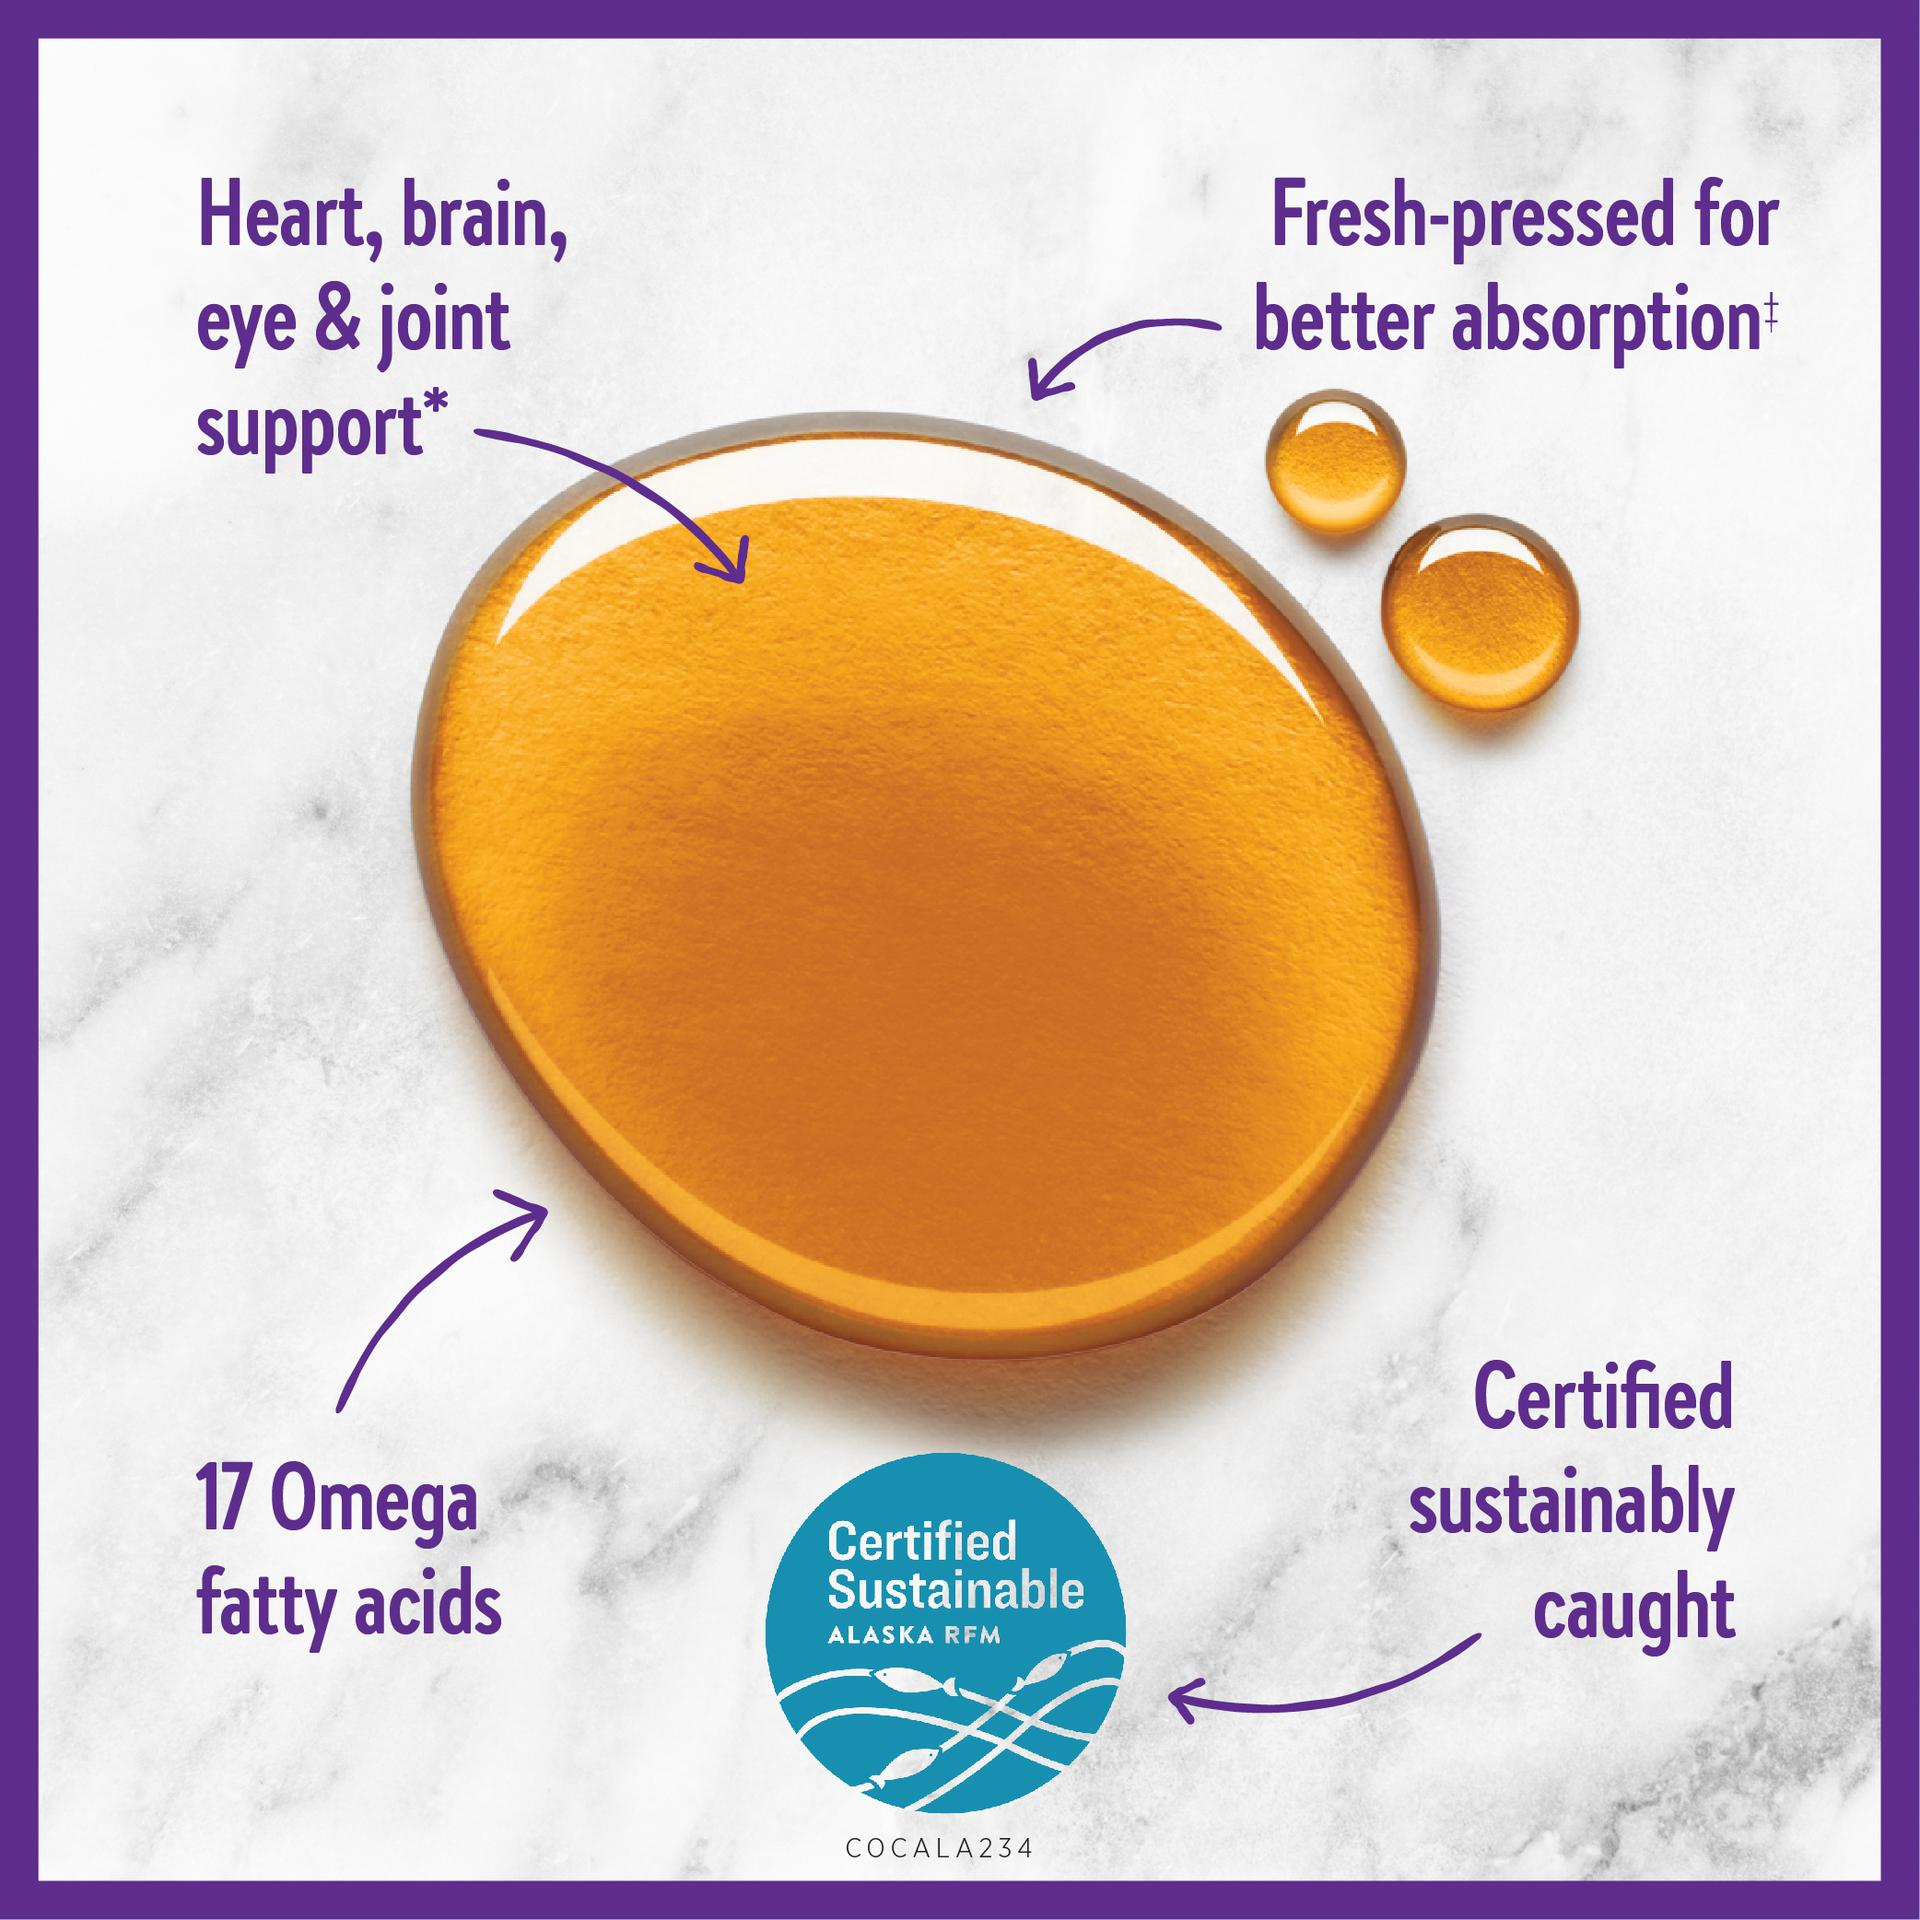 When to tak fish oil supplements